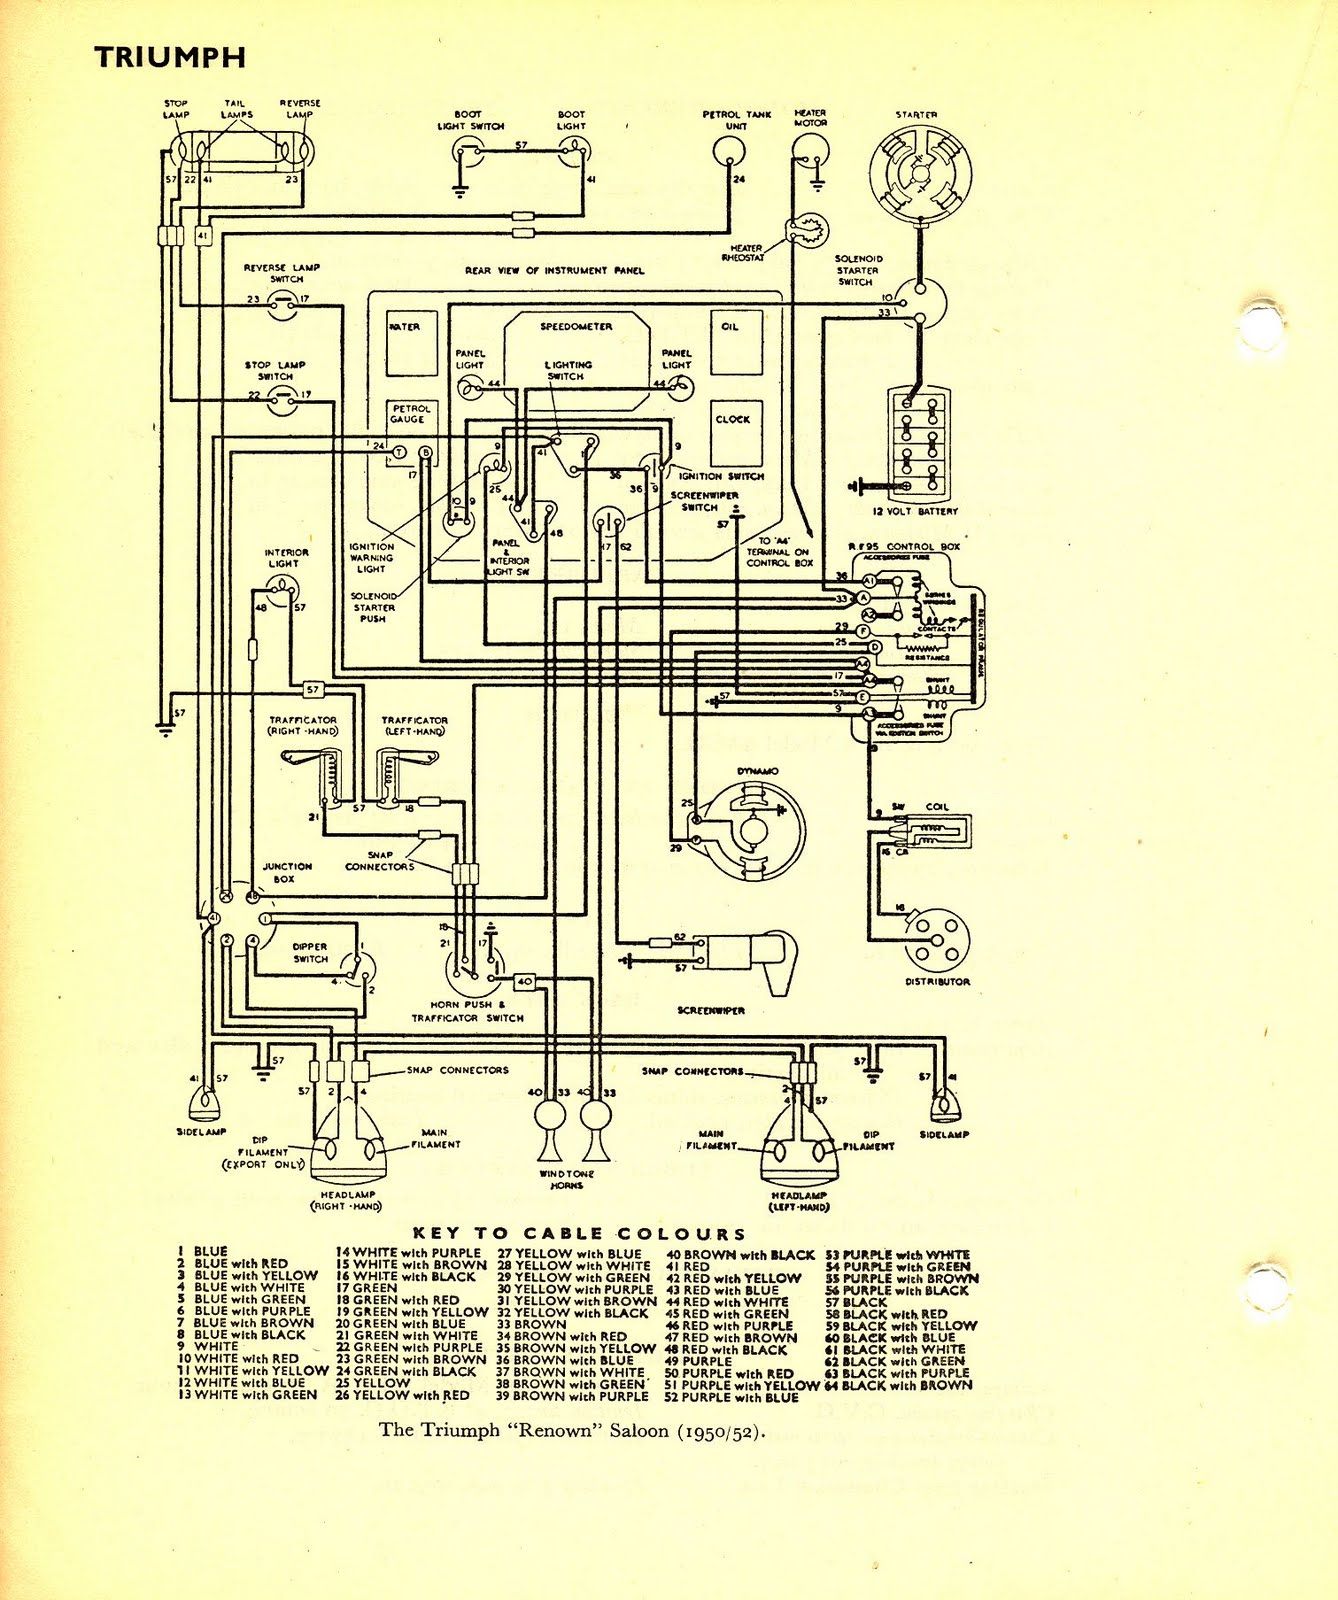 Triumph Wiring Diagram Single Gang Two Way Light Switch Vitessesteve Blog 1800 Saloon Roadster And